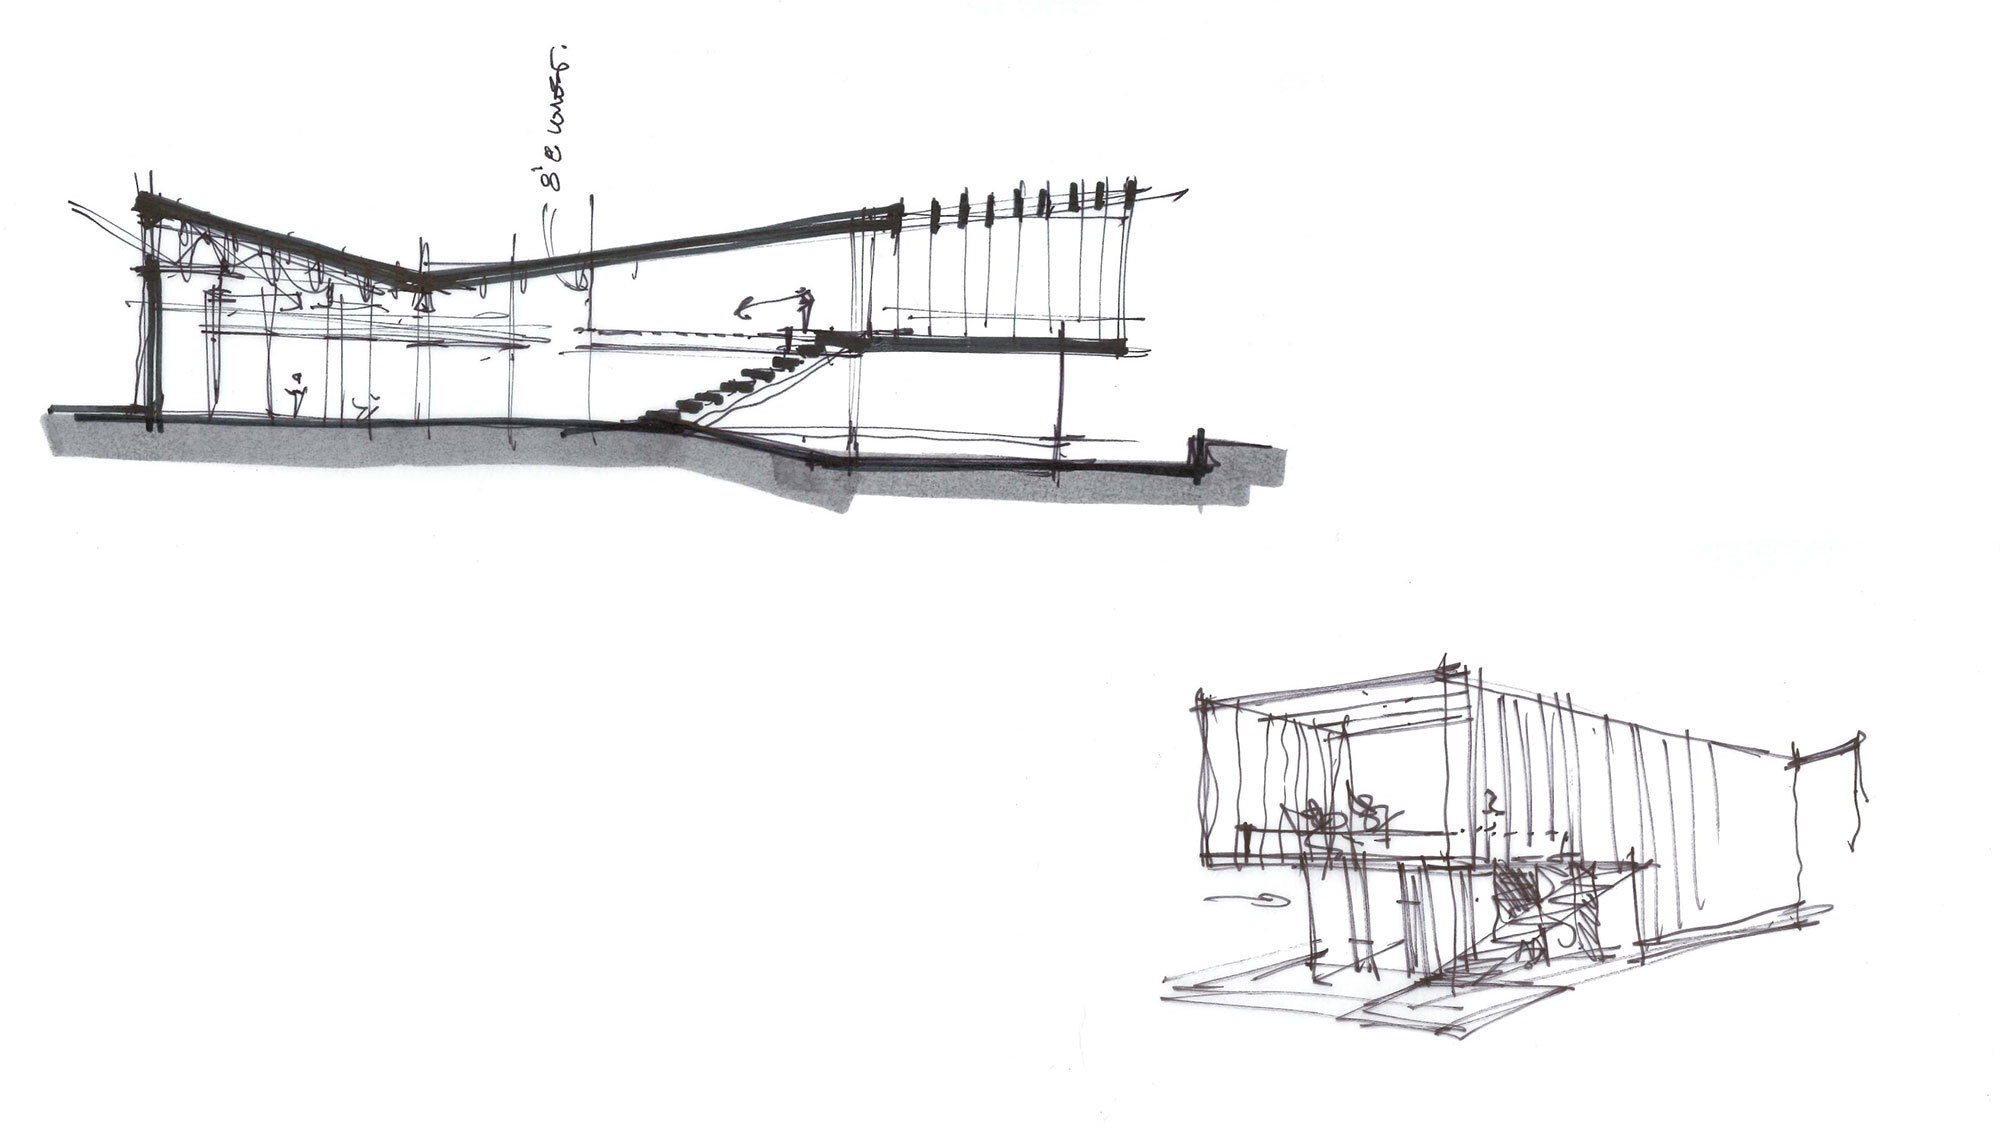 CCY Architects The Art Base sketches